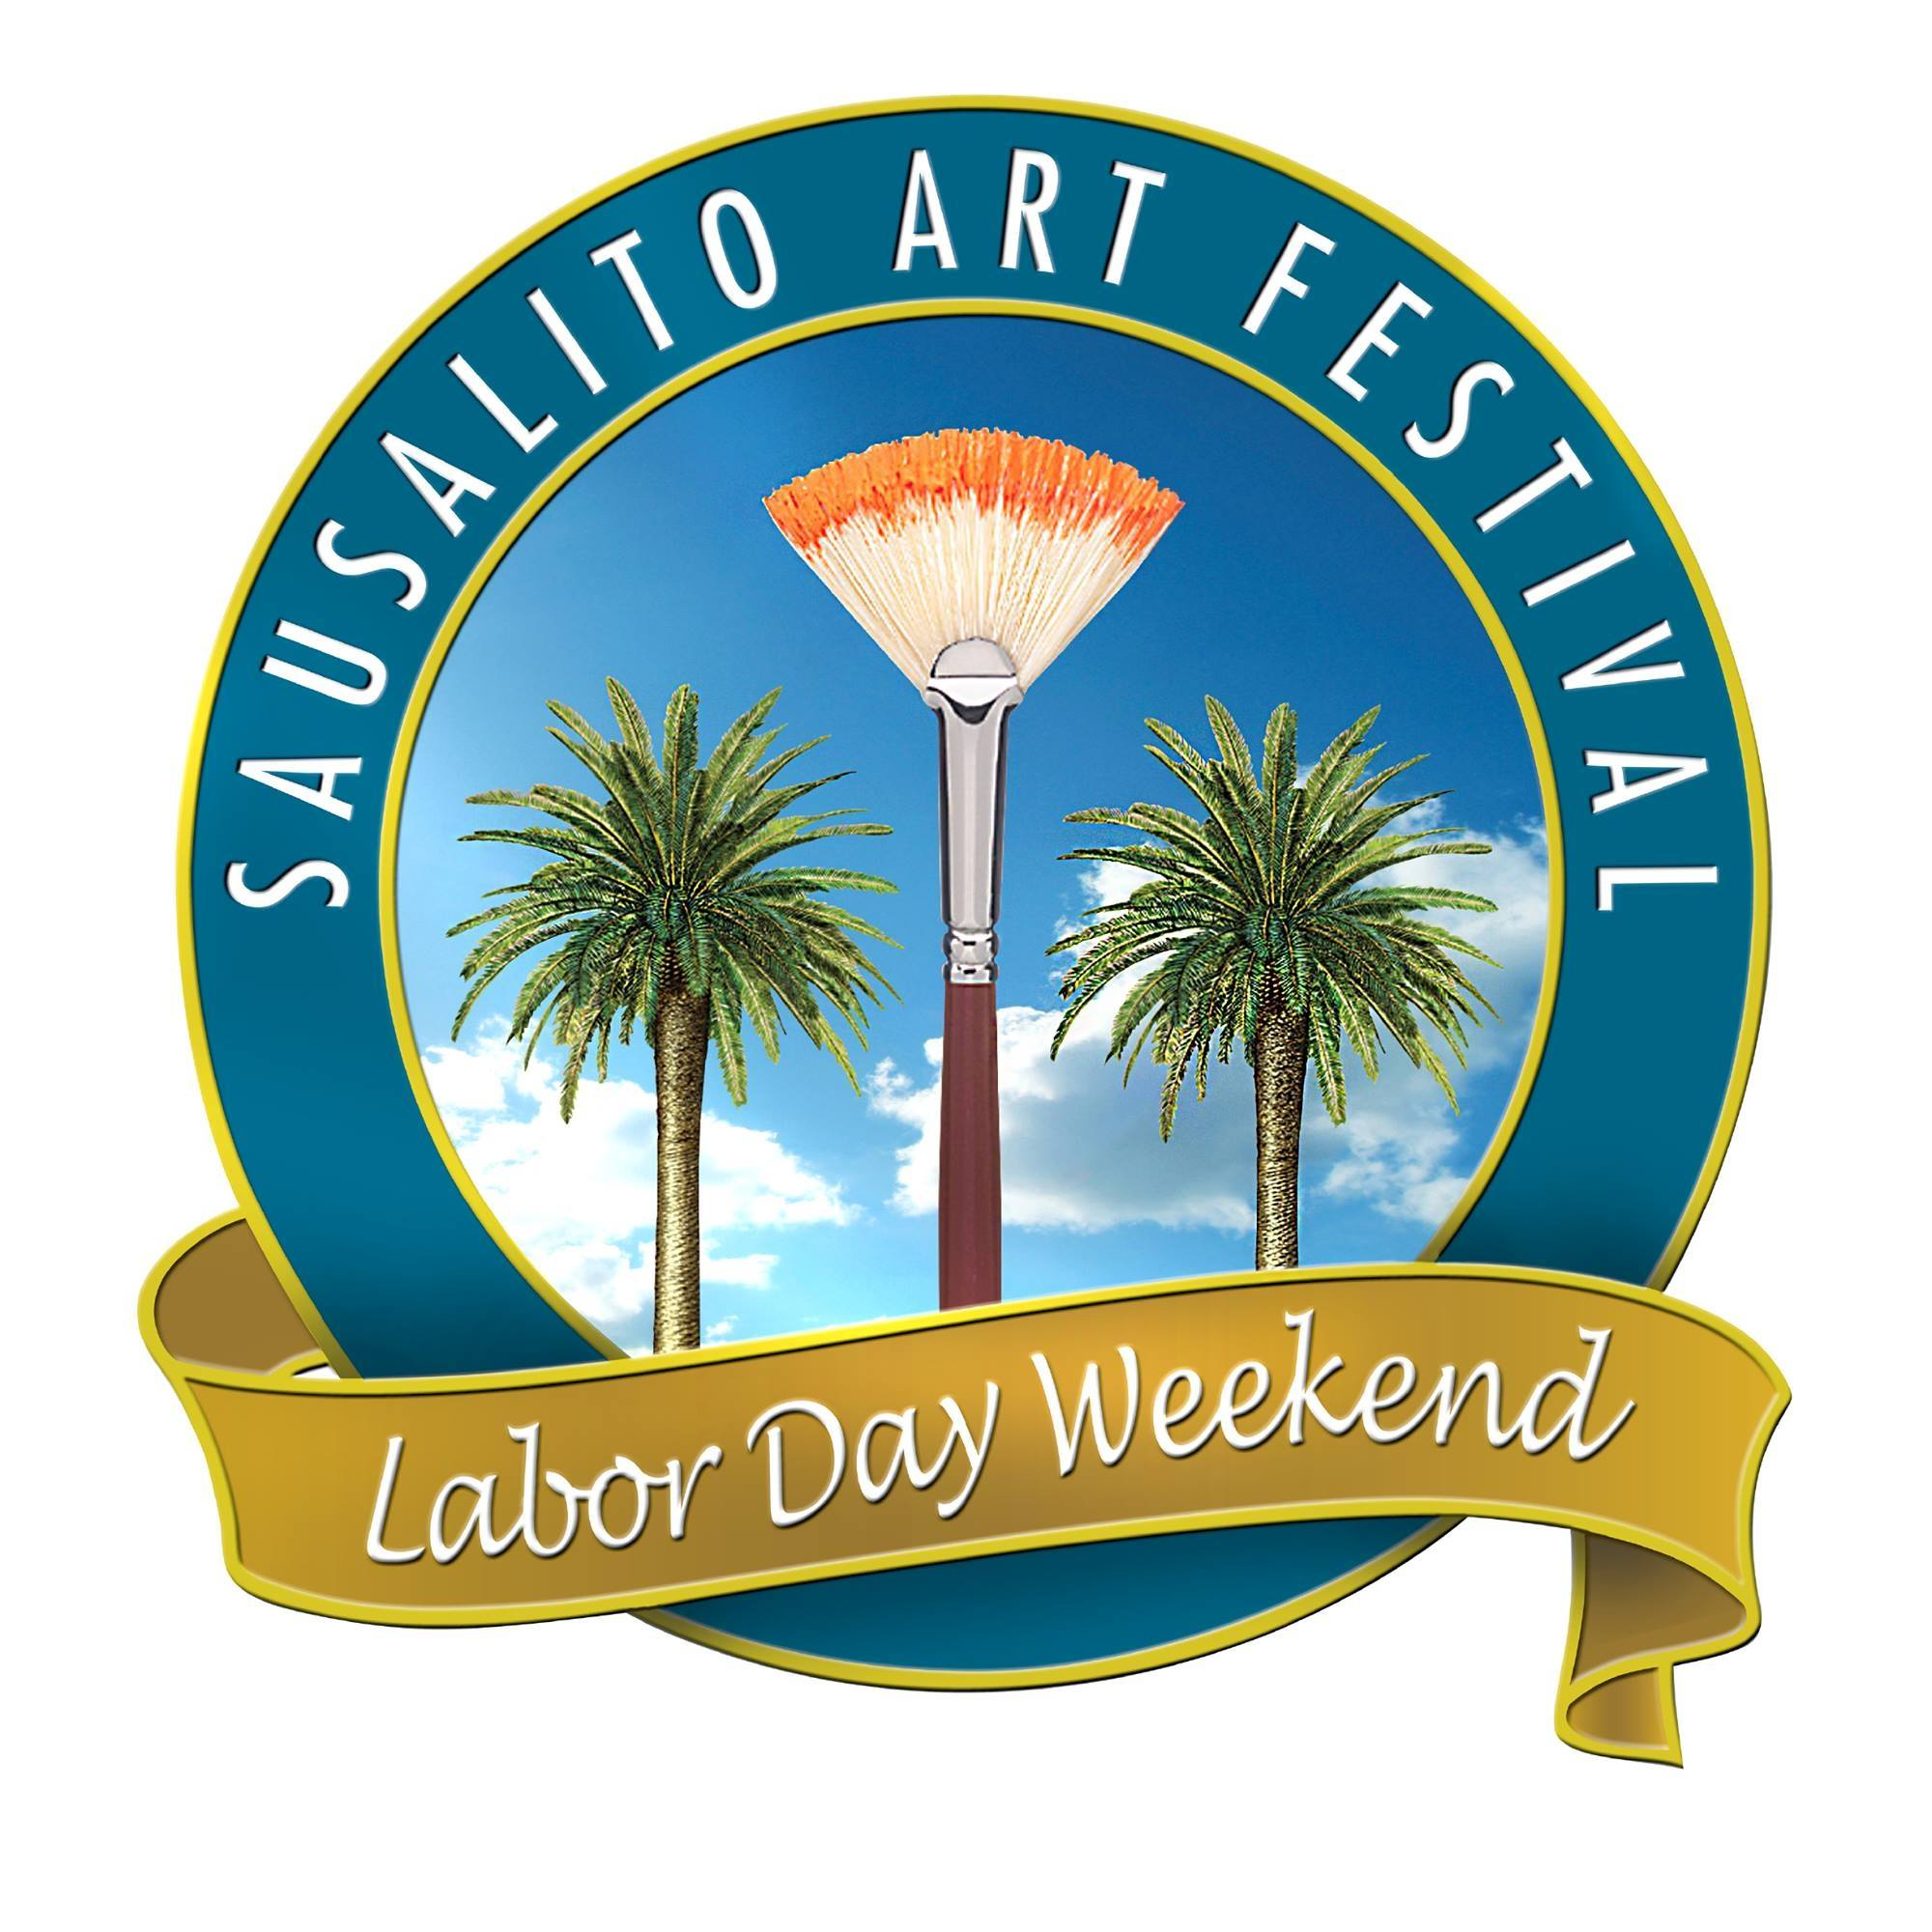 Labor Day Weekend - August 31 - September 2, 2019Marinship Park, Sausalito, CAThe celebration of fine art, music, food, and wine come together this Labor Day Weekend at one of the most prestigious art festivals in the country - the Sausalito Art Festival.The Sausalito Art Festival brings world-class art, music and wine together on the Sausalito waterfront for a Festival like none other. Come for the art (because it's awesome), and enjoy world-class music, wine and entertainment.